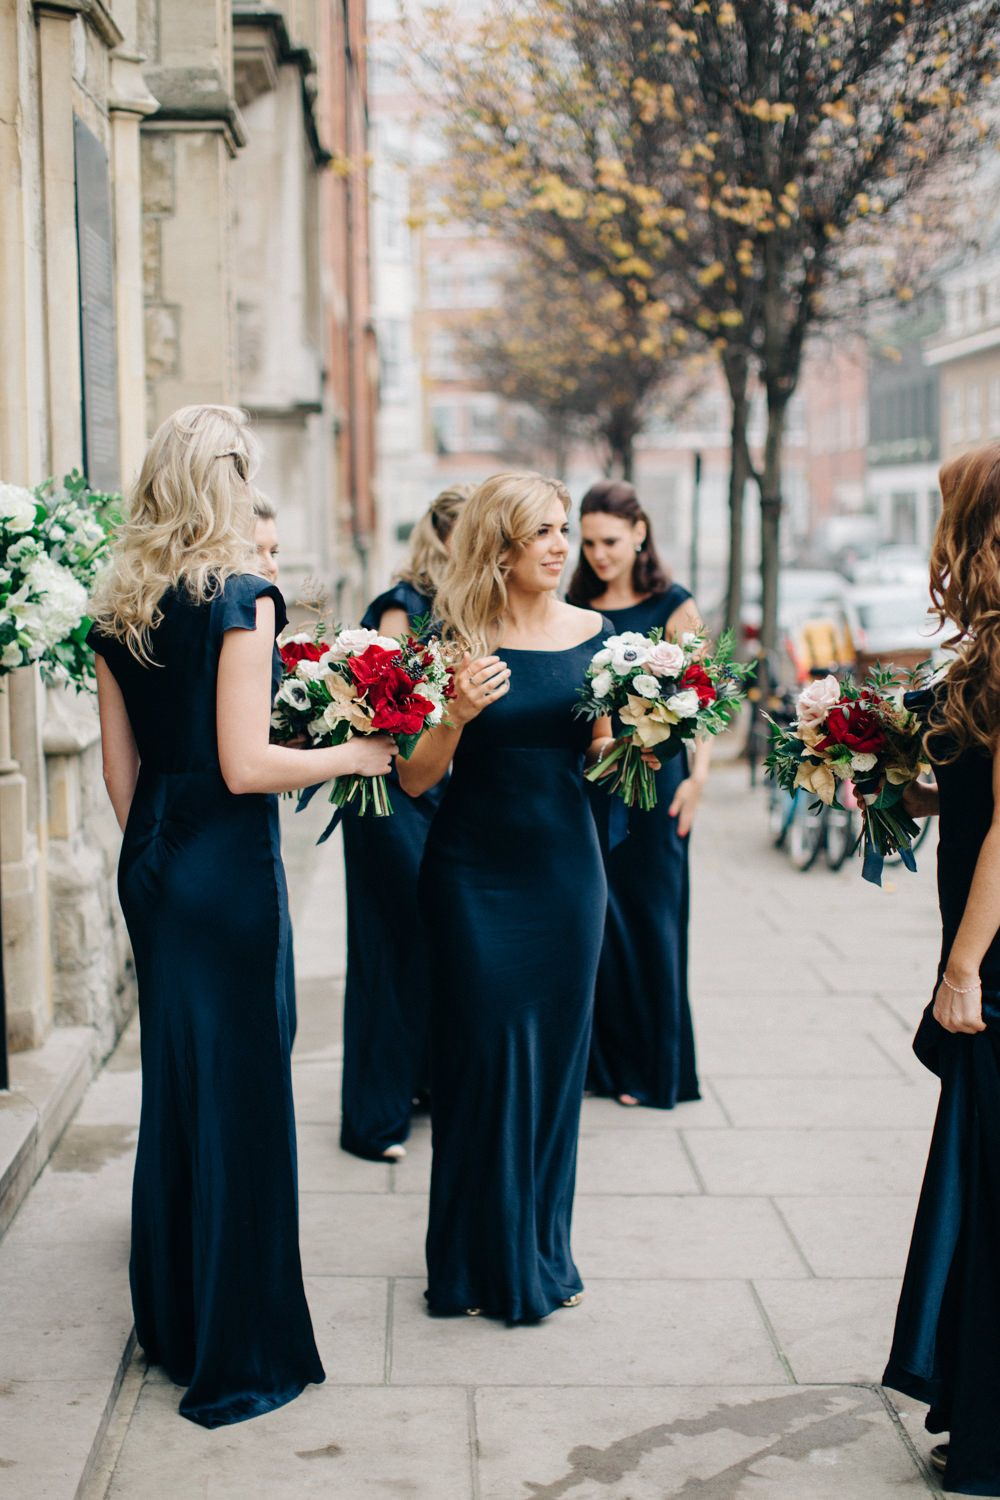 Elegant navy gold winter wedding styled by liz linkleter events elegant navy gold winter wedding styled by liz linkleter events with charlotte simpson bridal gown ombrellifo Image collections